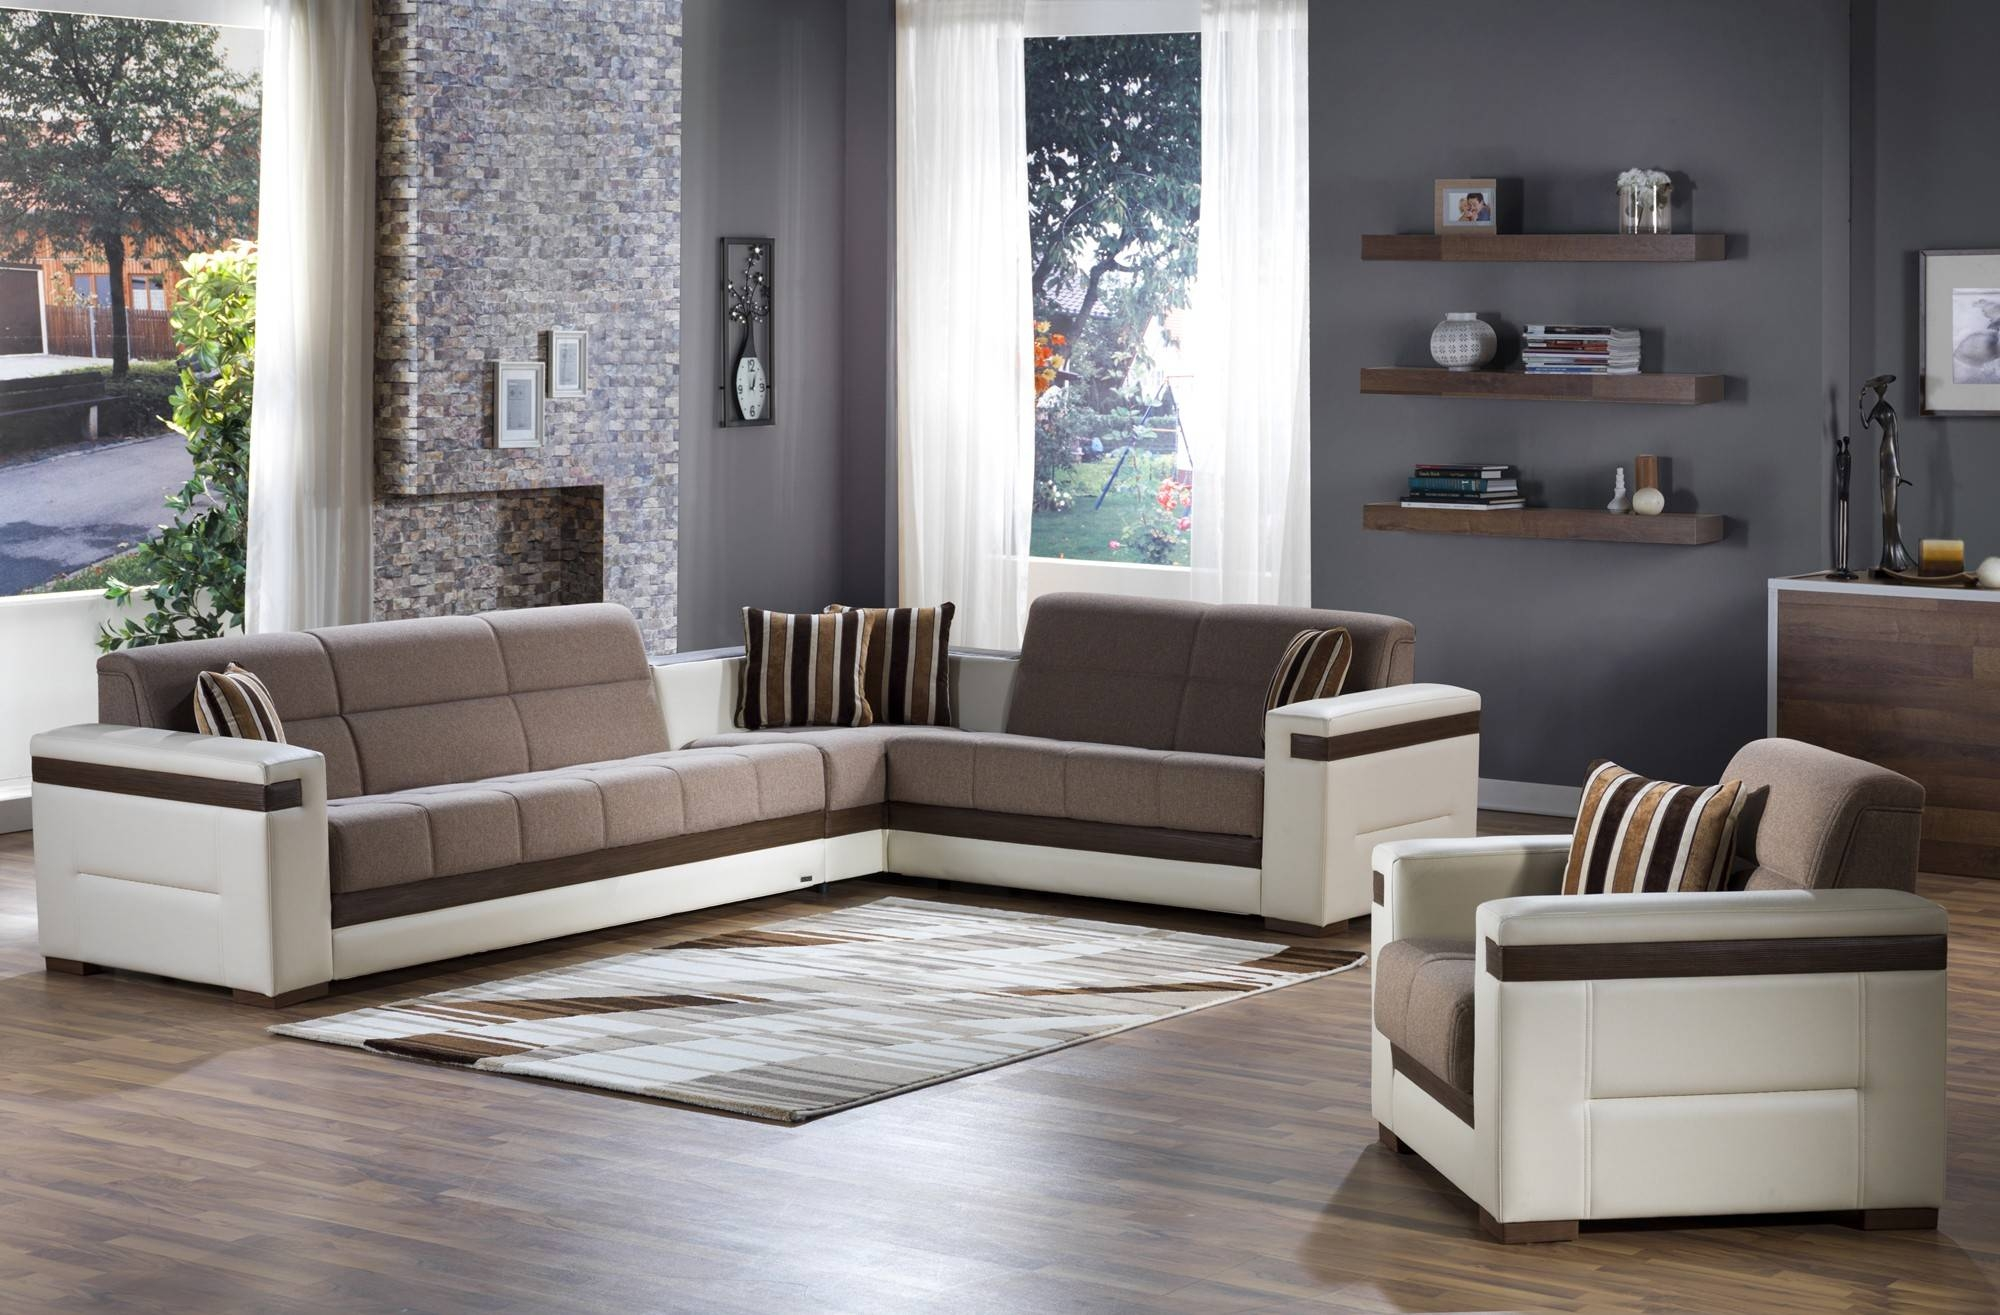 Moon Convertible Sectional Sofa In Platin Mustardistikbal intended for Convertible Sectional Sofas (Image 18 of 30)